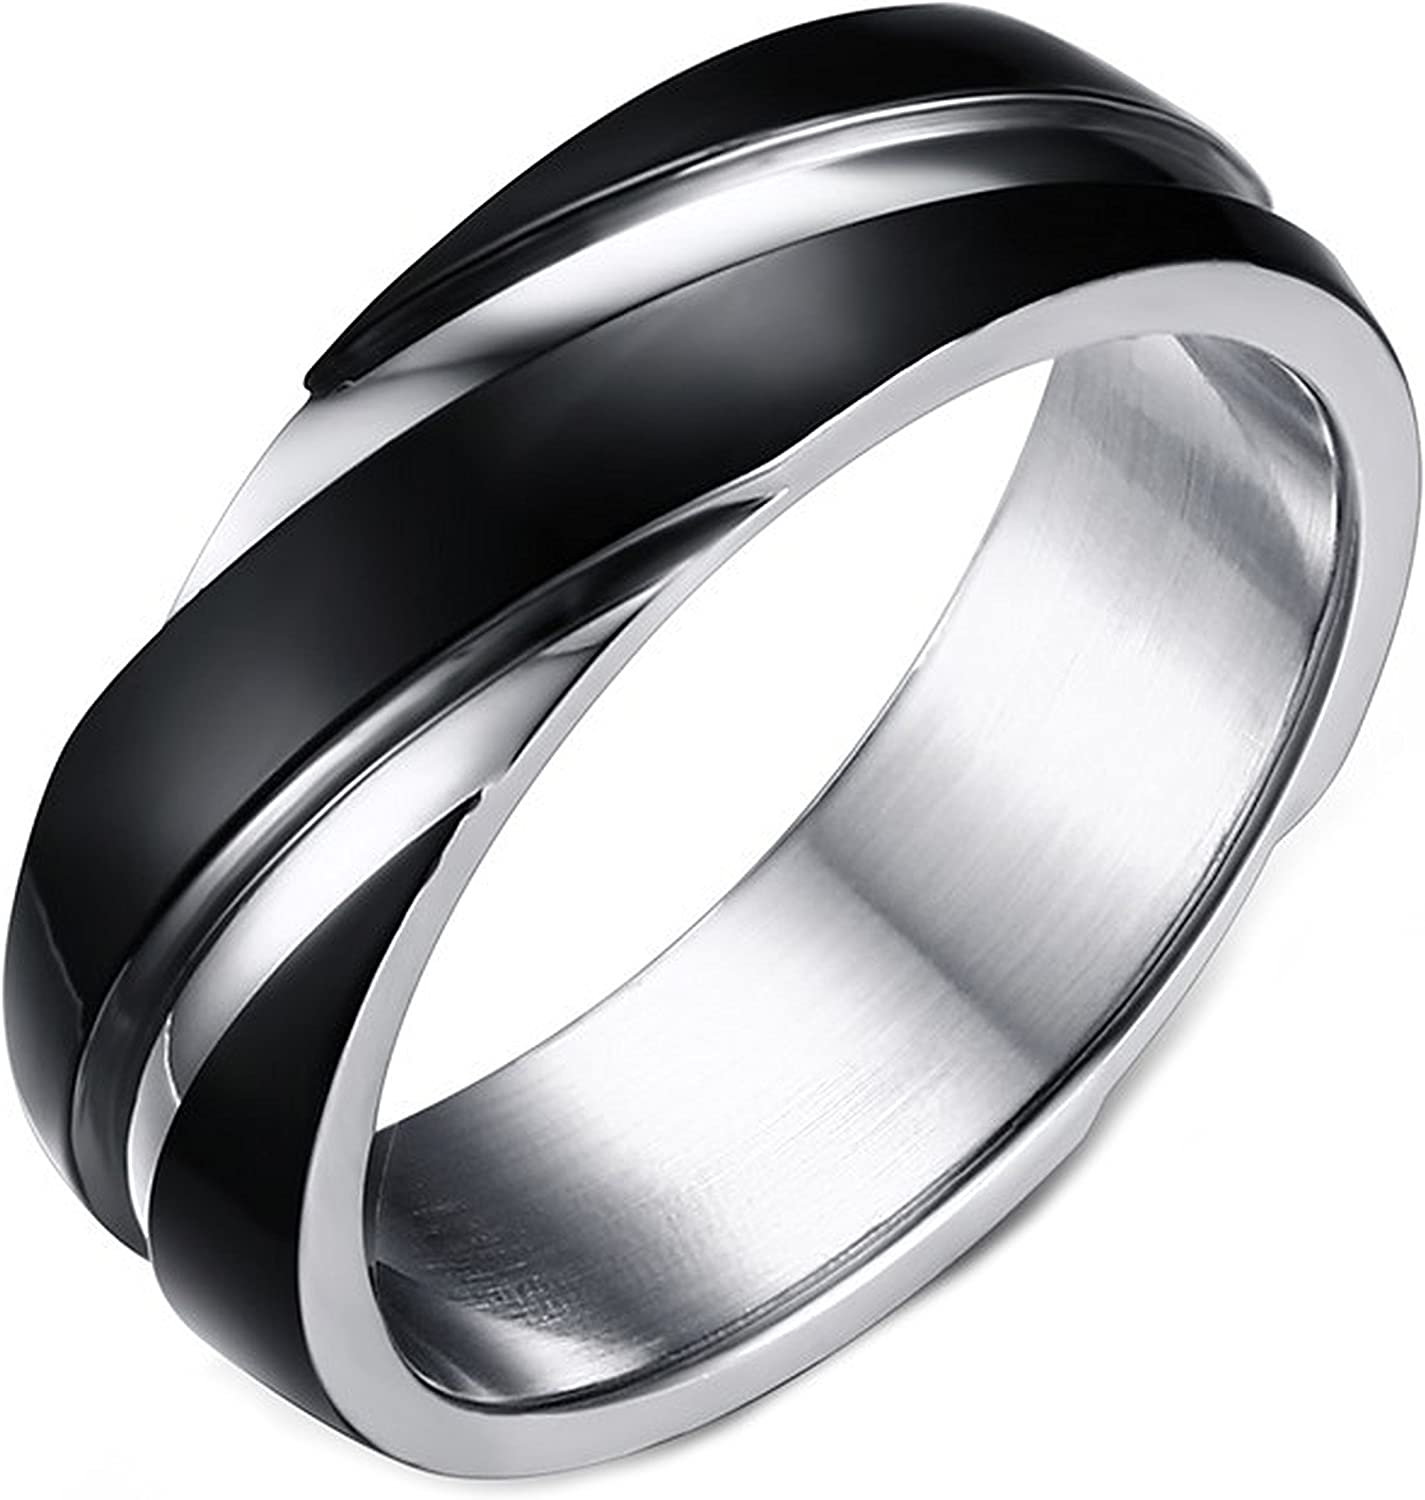 LineAve Men's Stainless Steel Black Stripe Ring 6mm Wedding Band, Comfort Fit, Unisex